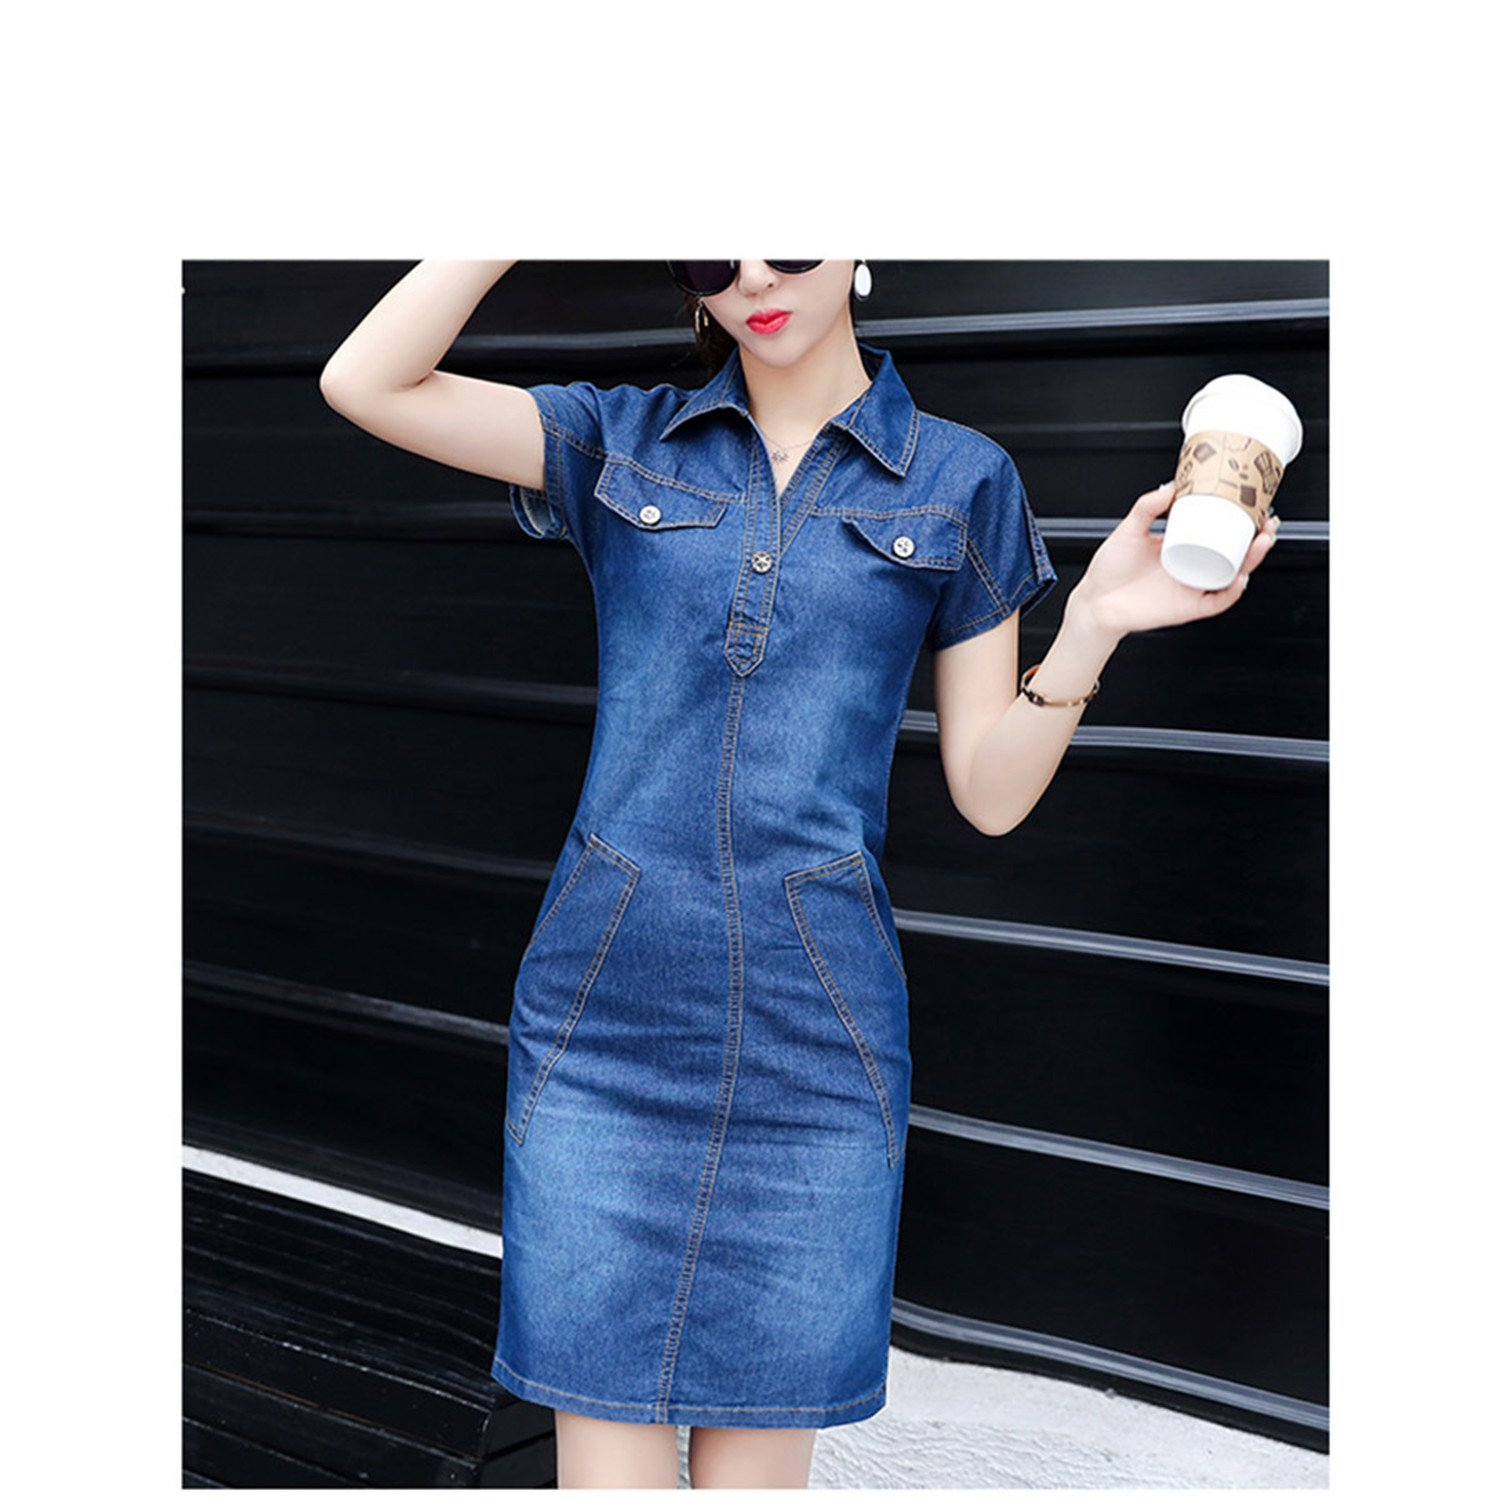 Amazon.com: FBIIIOU Jeans Dresses Vintage Slim Office Short Dress Vestidos: Clothing